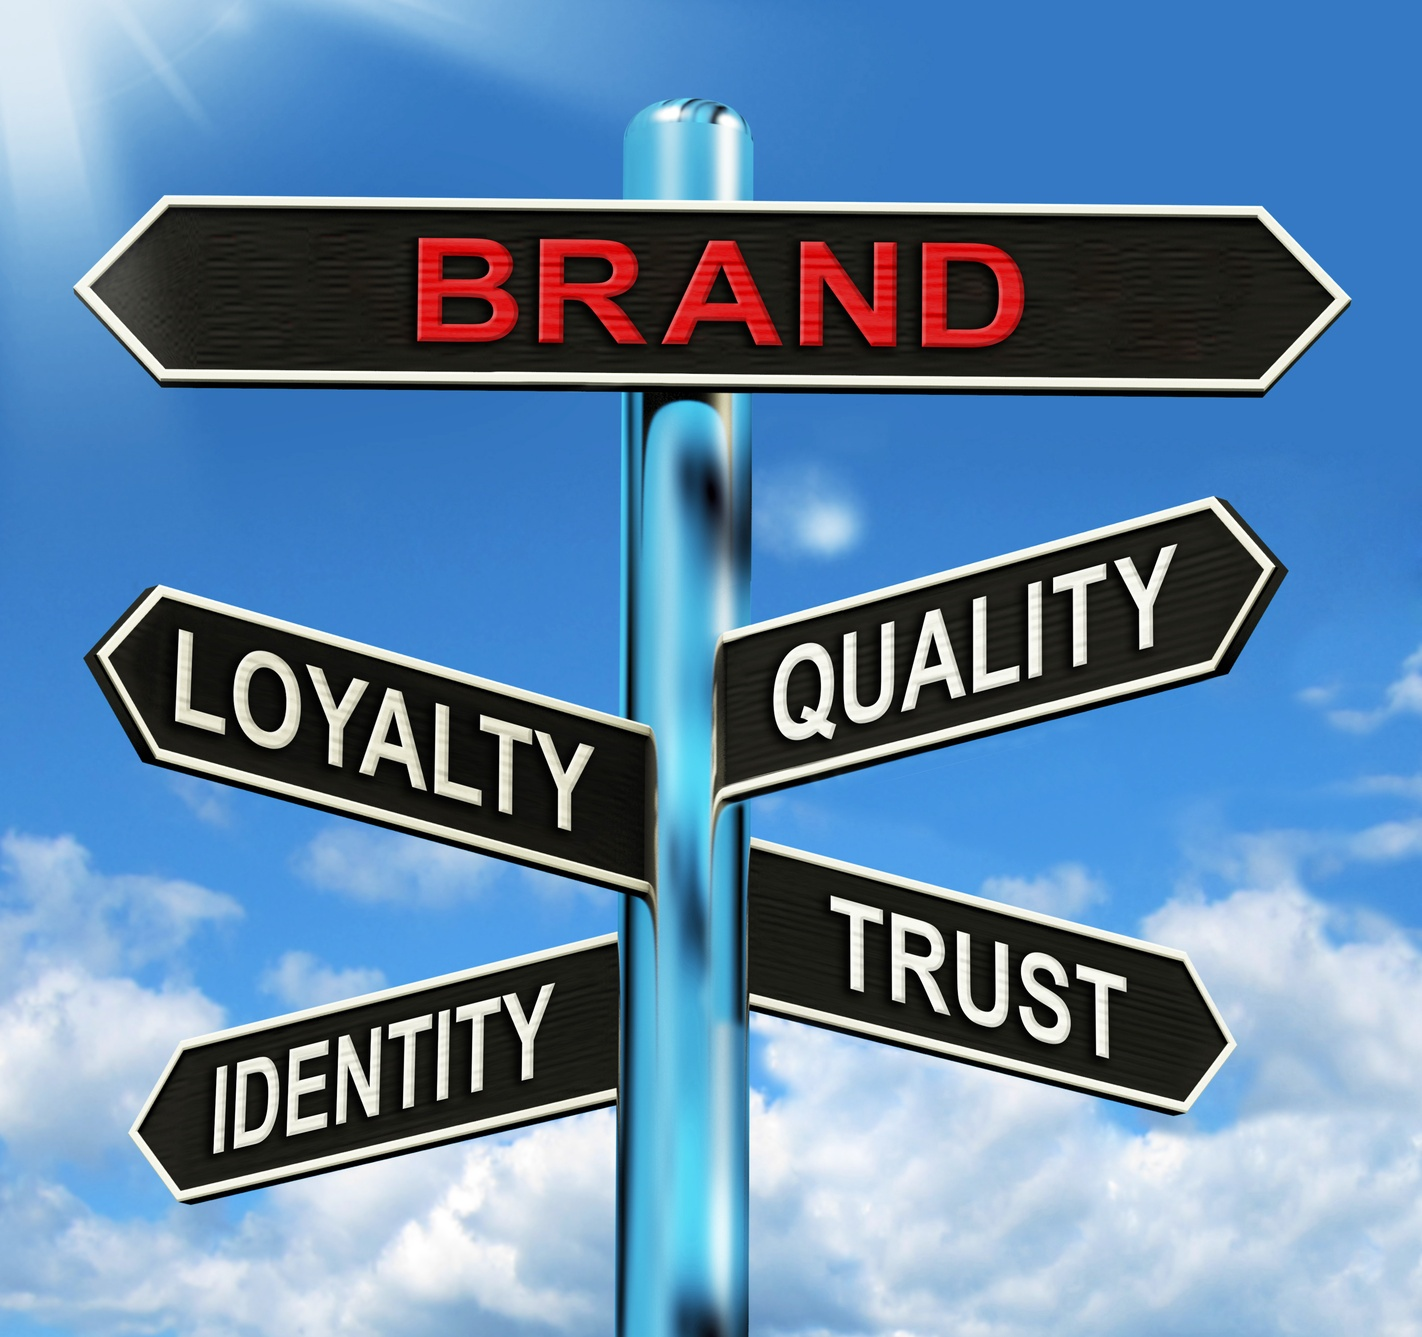 Guide your online leads with quality content, and watch them become increasingly loyal to your brand.